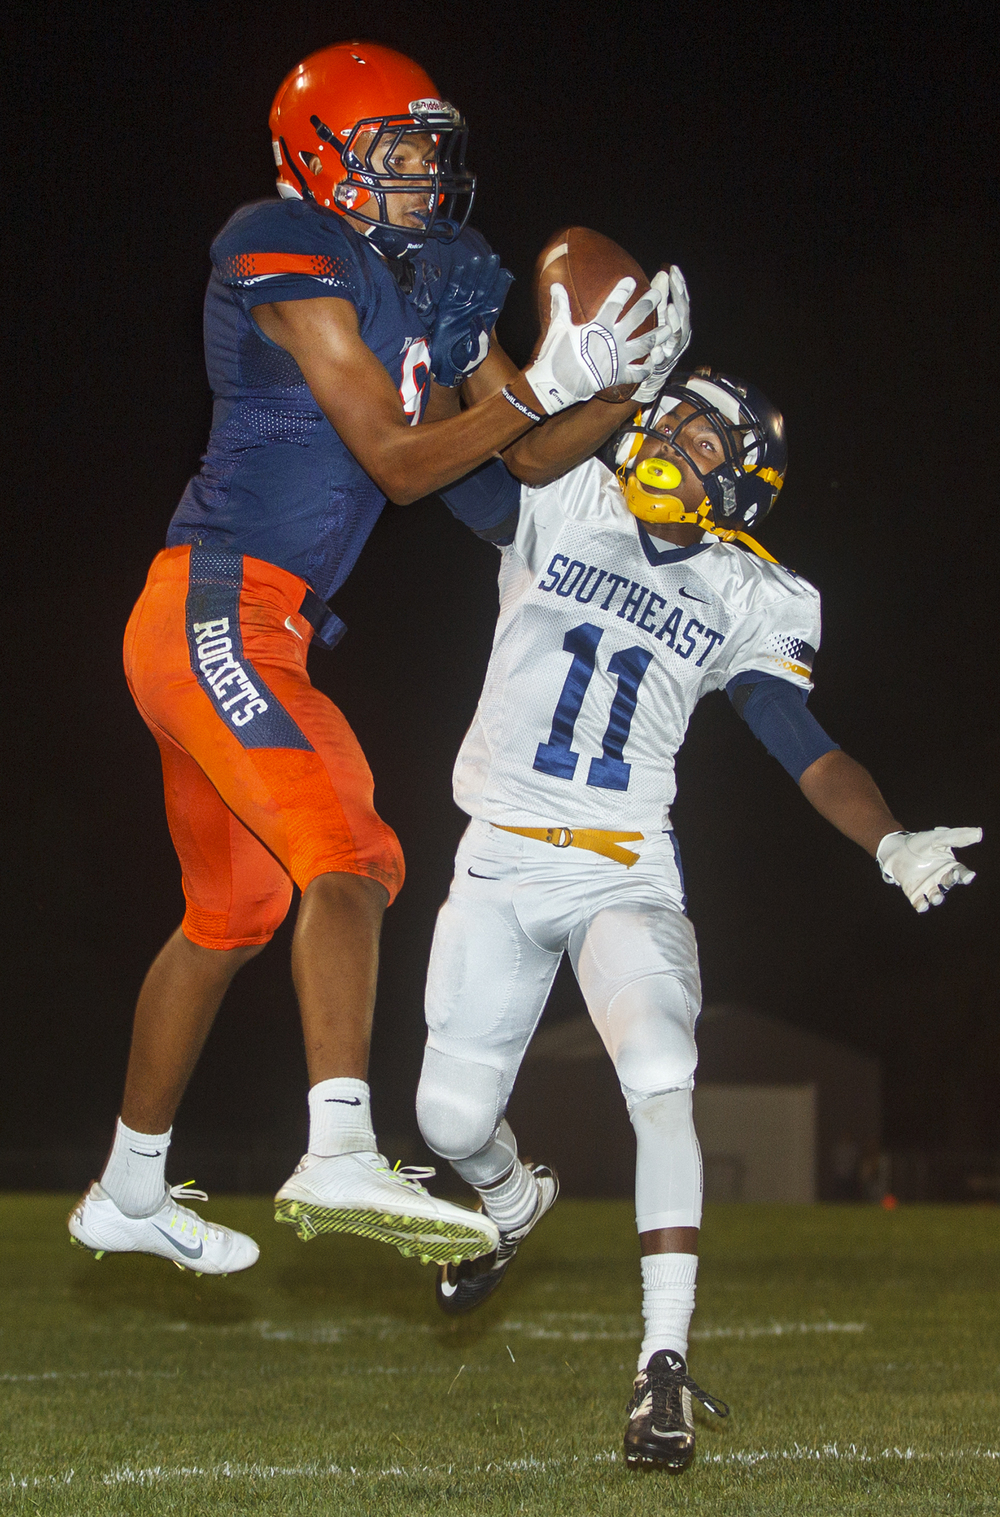 Rochester's Collin Stallworth catches a touchdown pass in front of Southeast's Darryl Williams Jr. at Rochester High School Friday Sept. 25, 2015. Stallworth caught three touchdown passes in the first half. Ted Schurter/The State Journal-Register